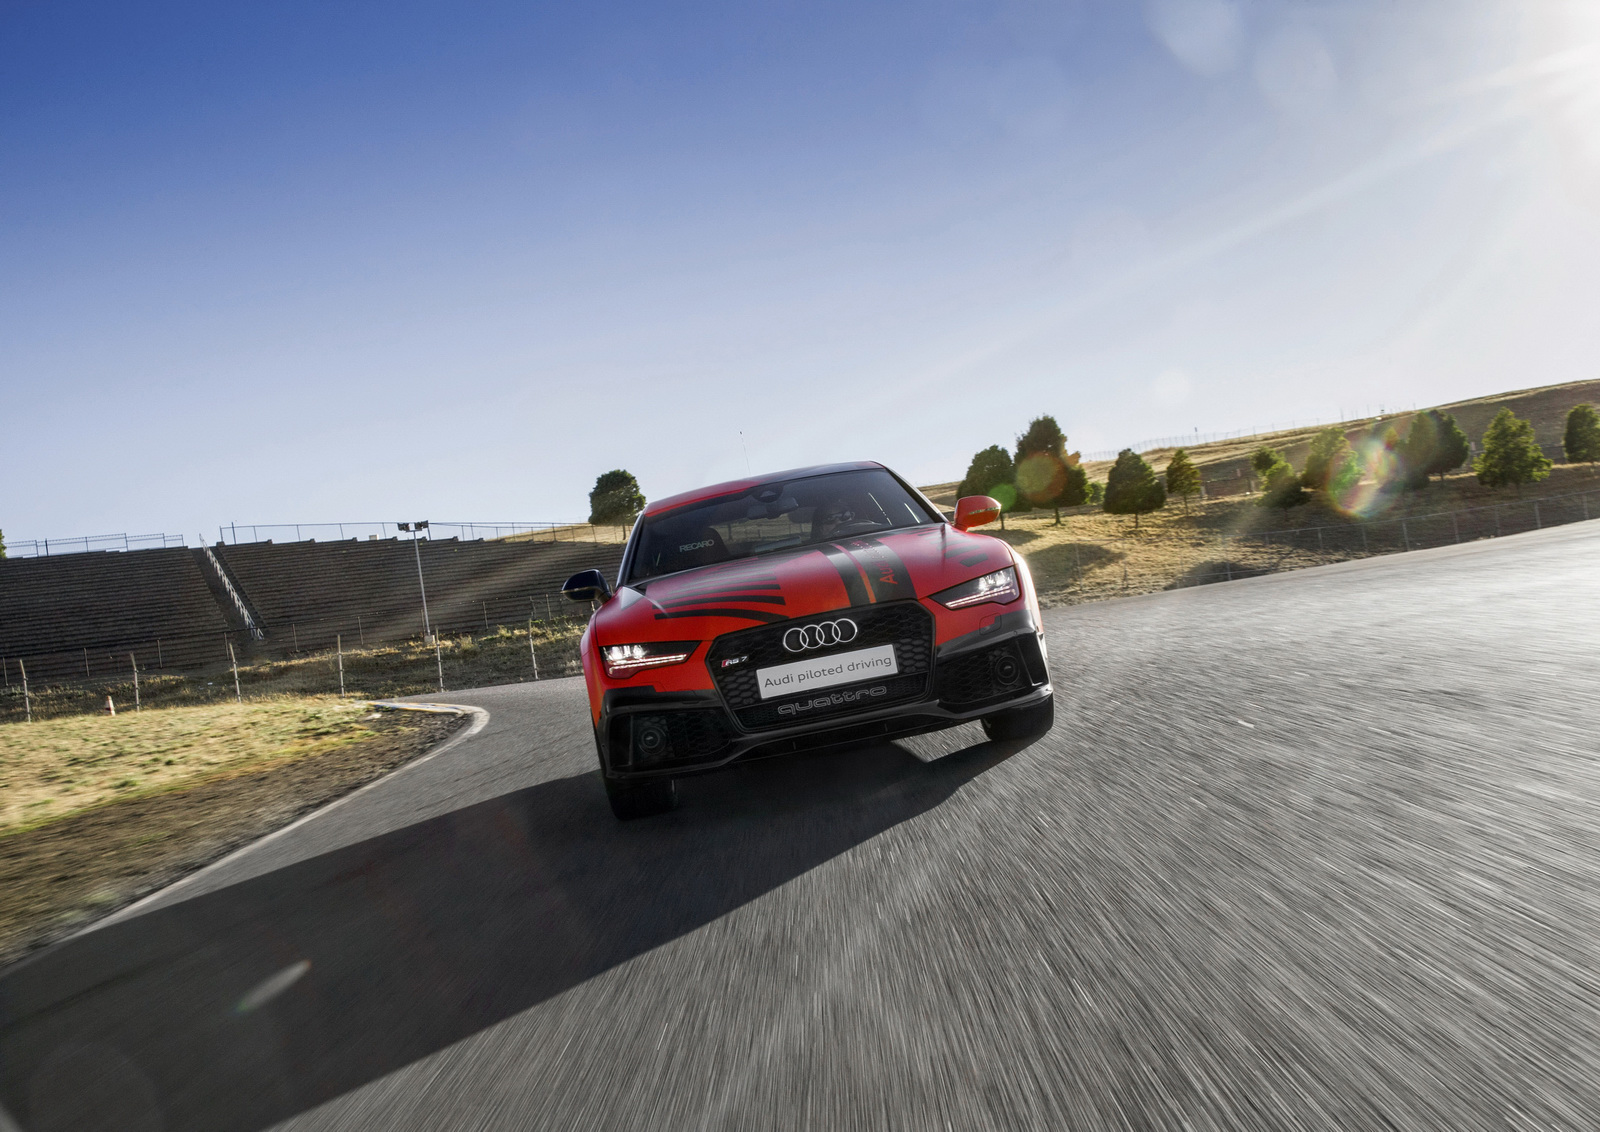 Des nouvelles de la RS7 Piloted Driving - Photo n°8